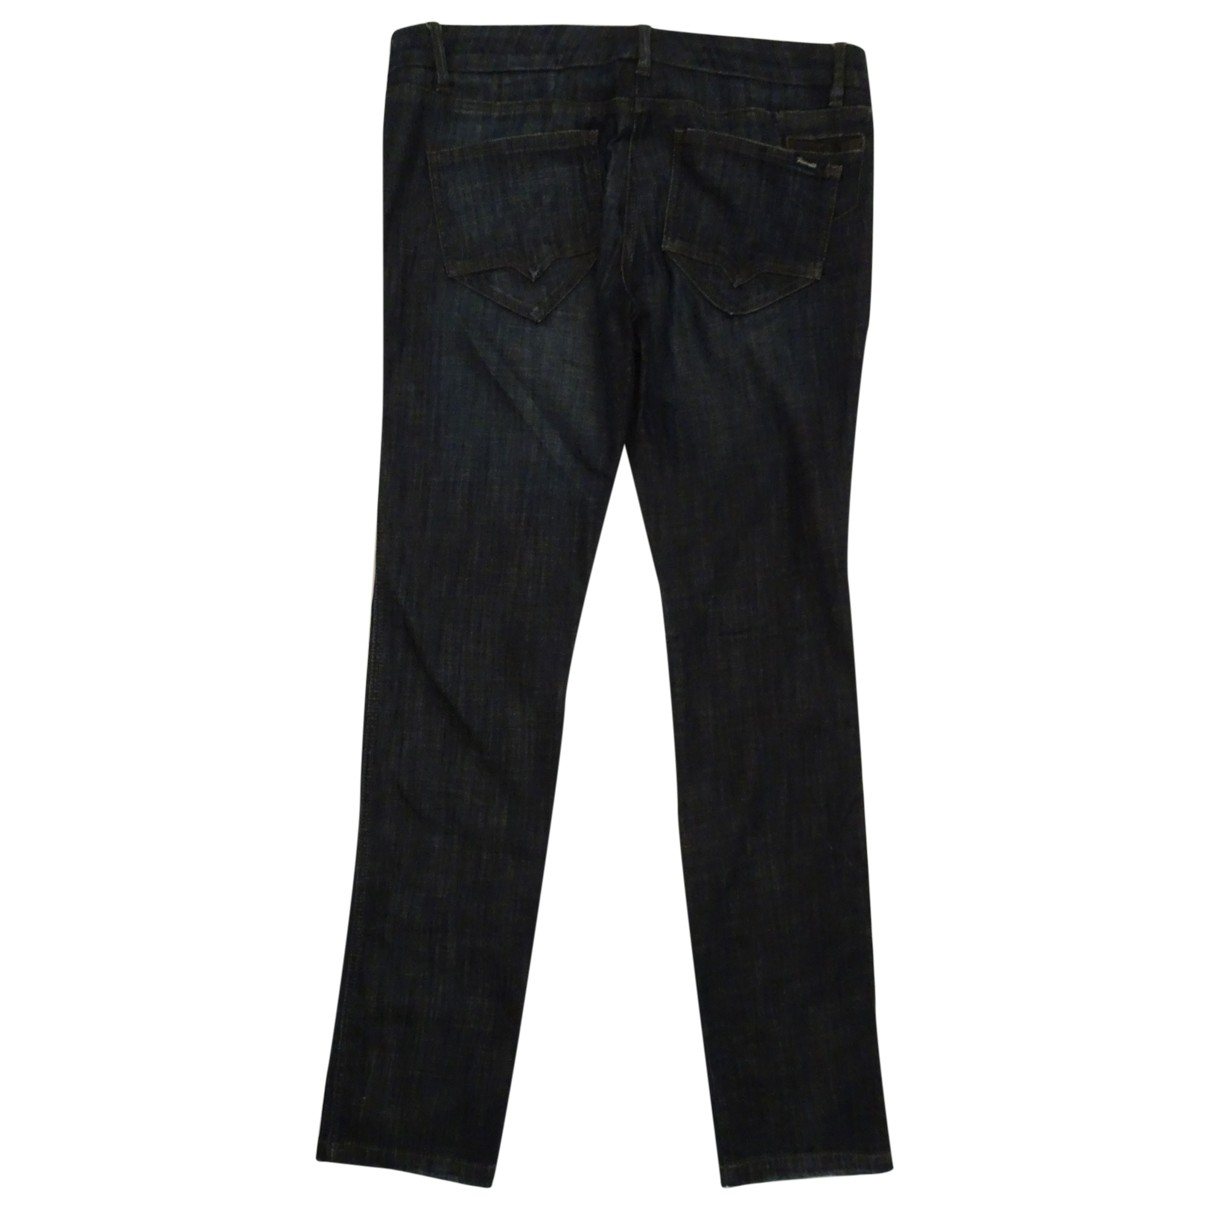 Trussardi Jeans \N Blue Cotton - elasthane Jeans for Women 34 US